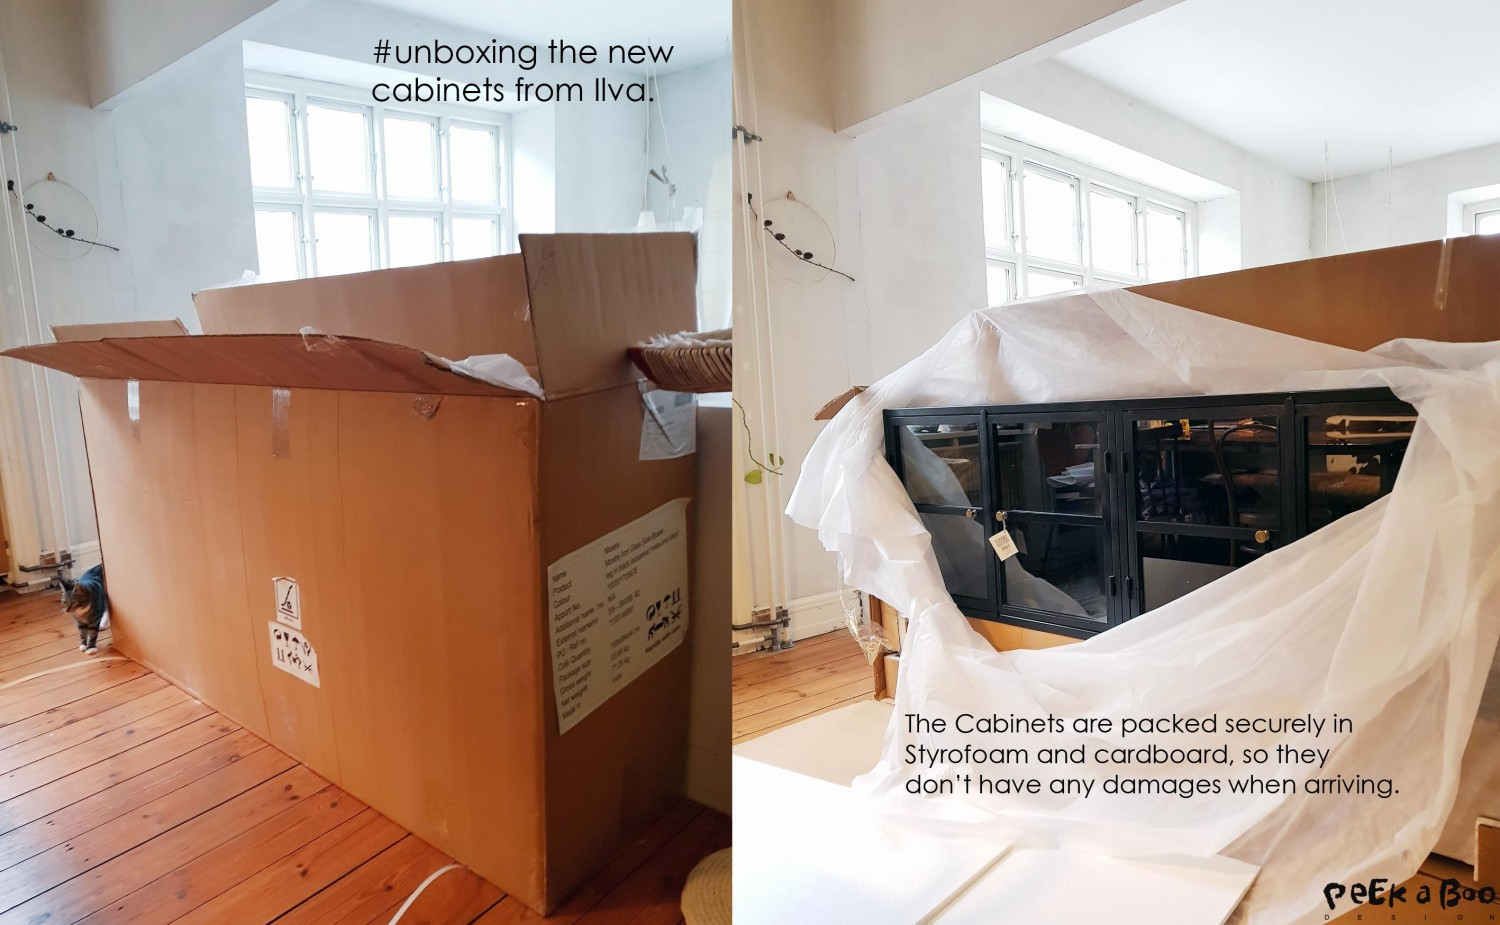 unboxing the cabinets.